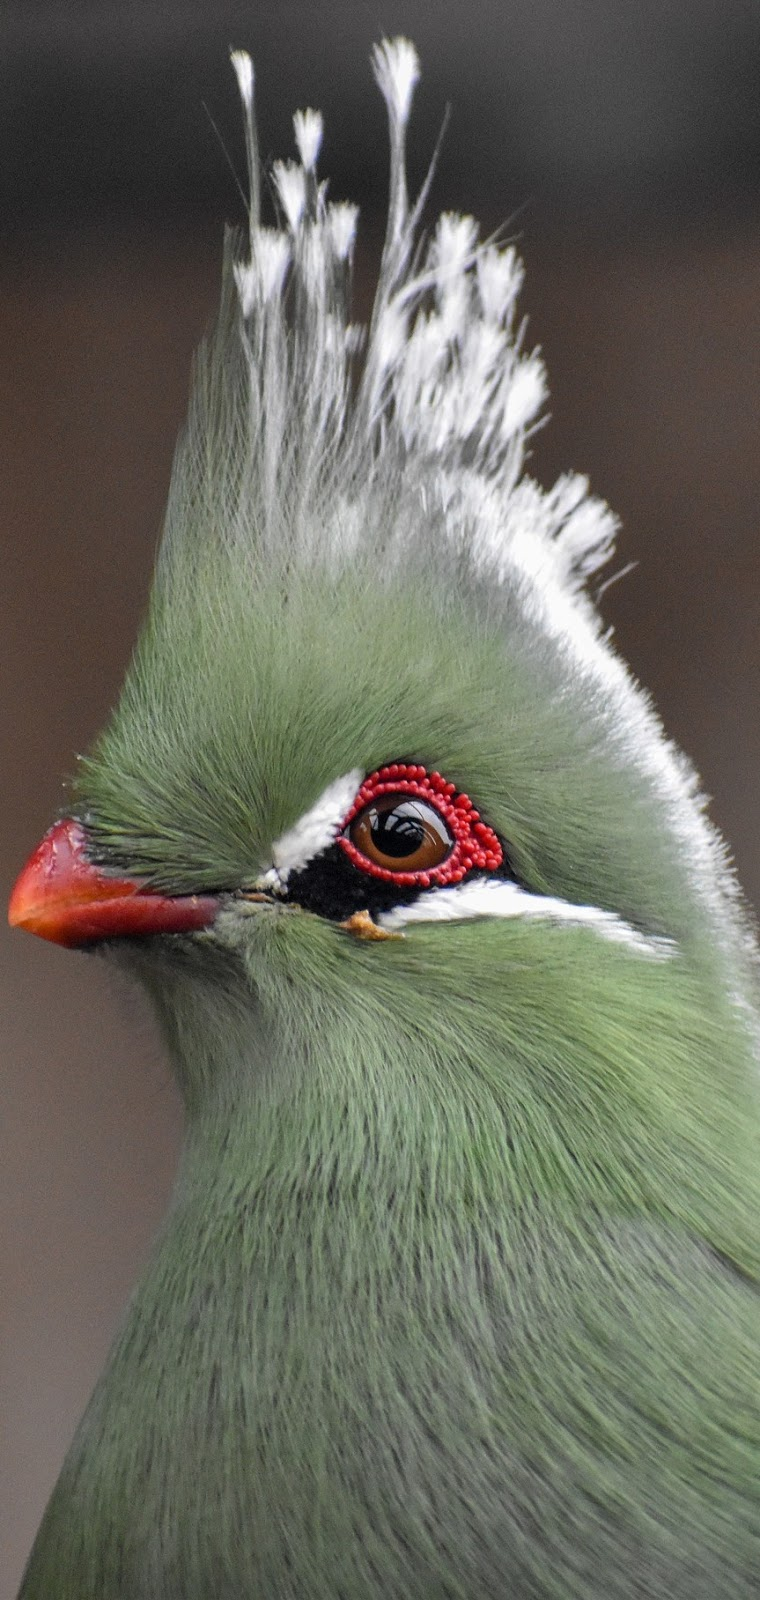 Guinea turaco bird up close